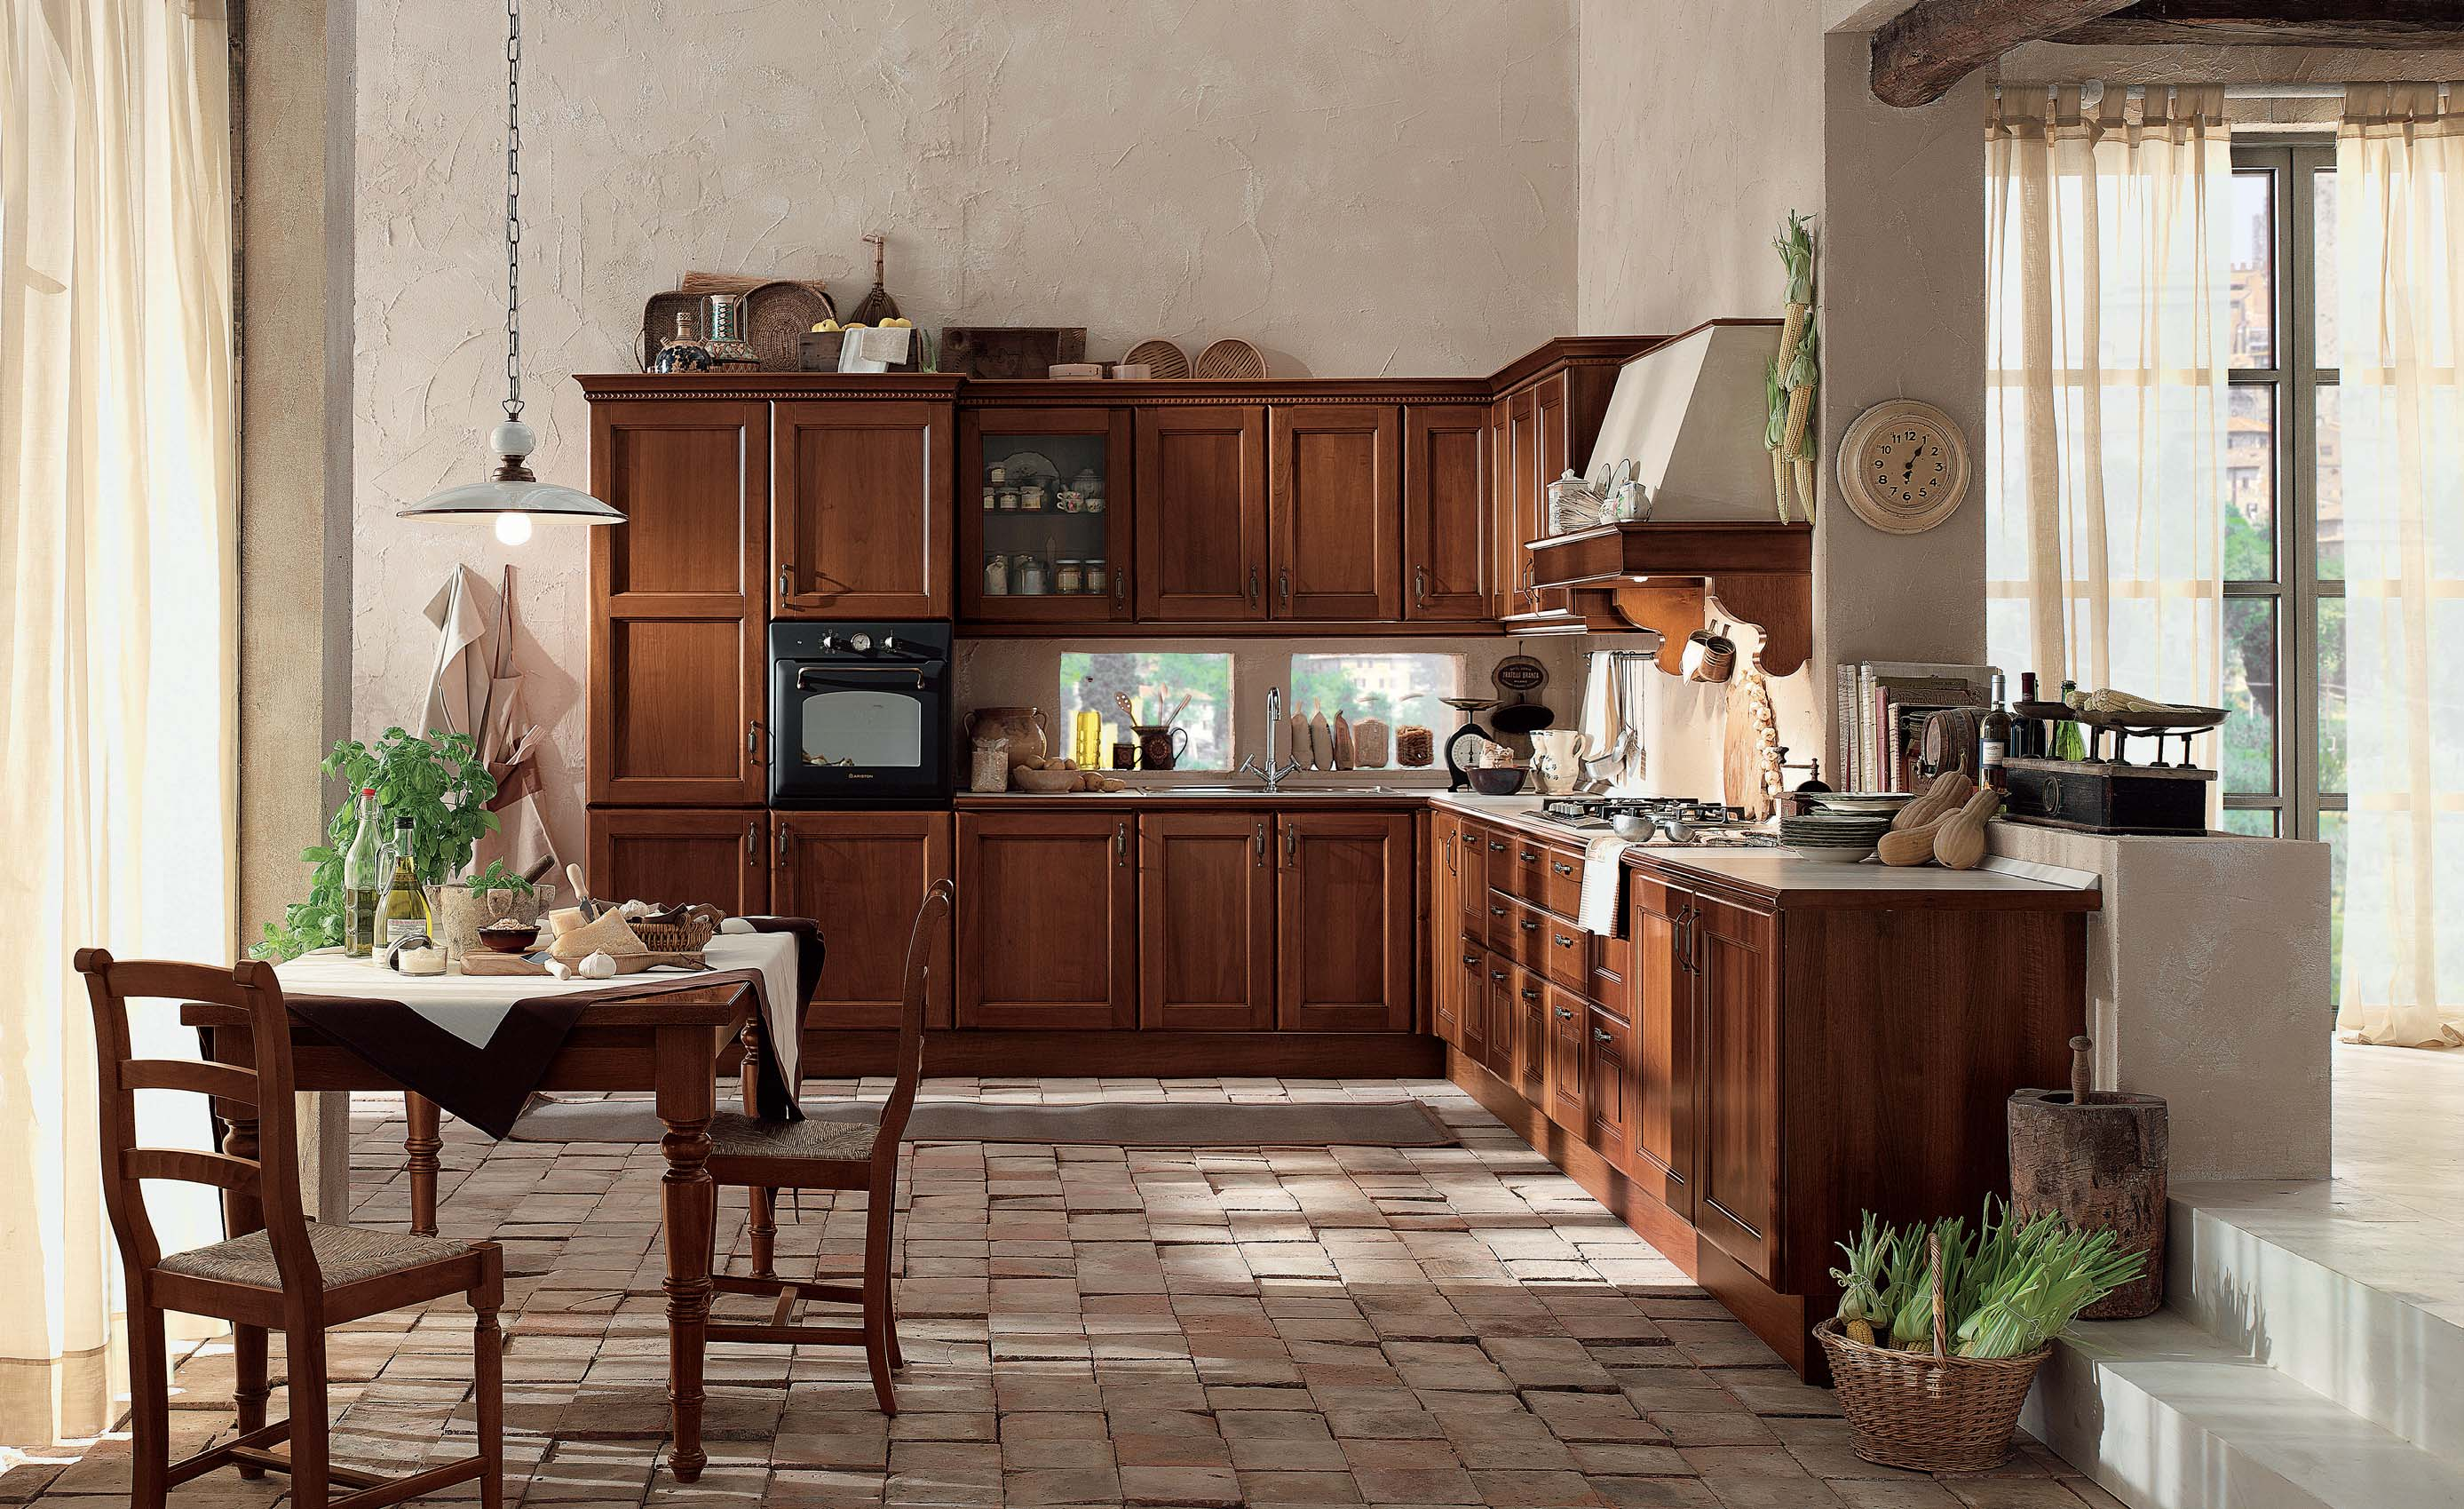 Tosco Classic Kitchen Design